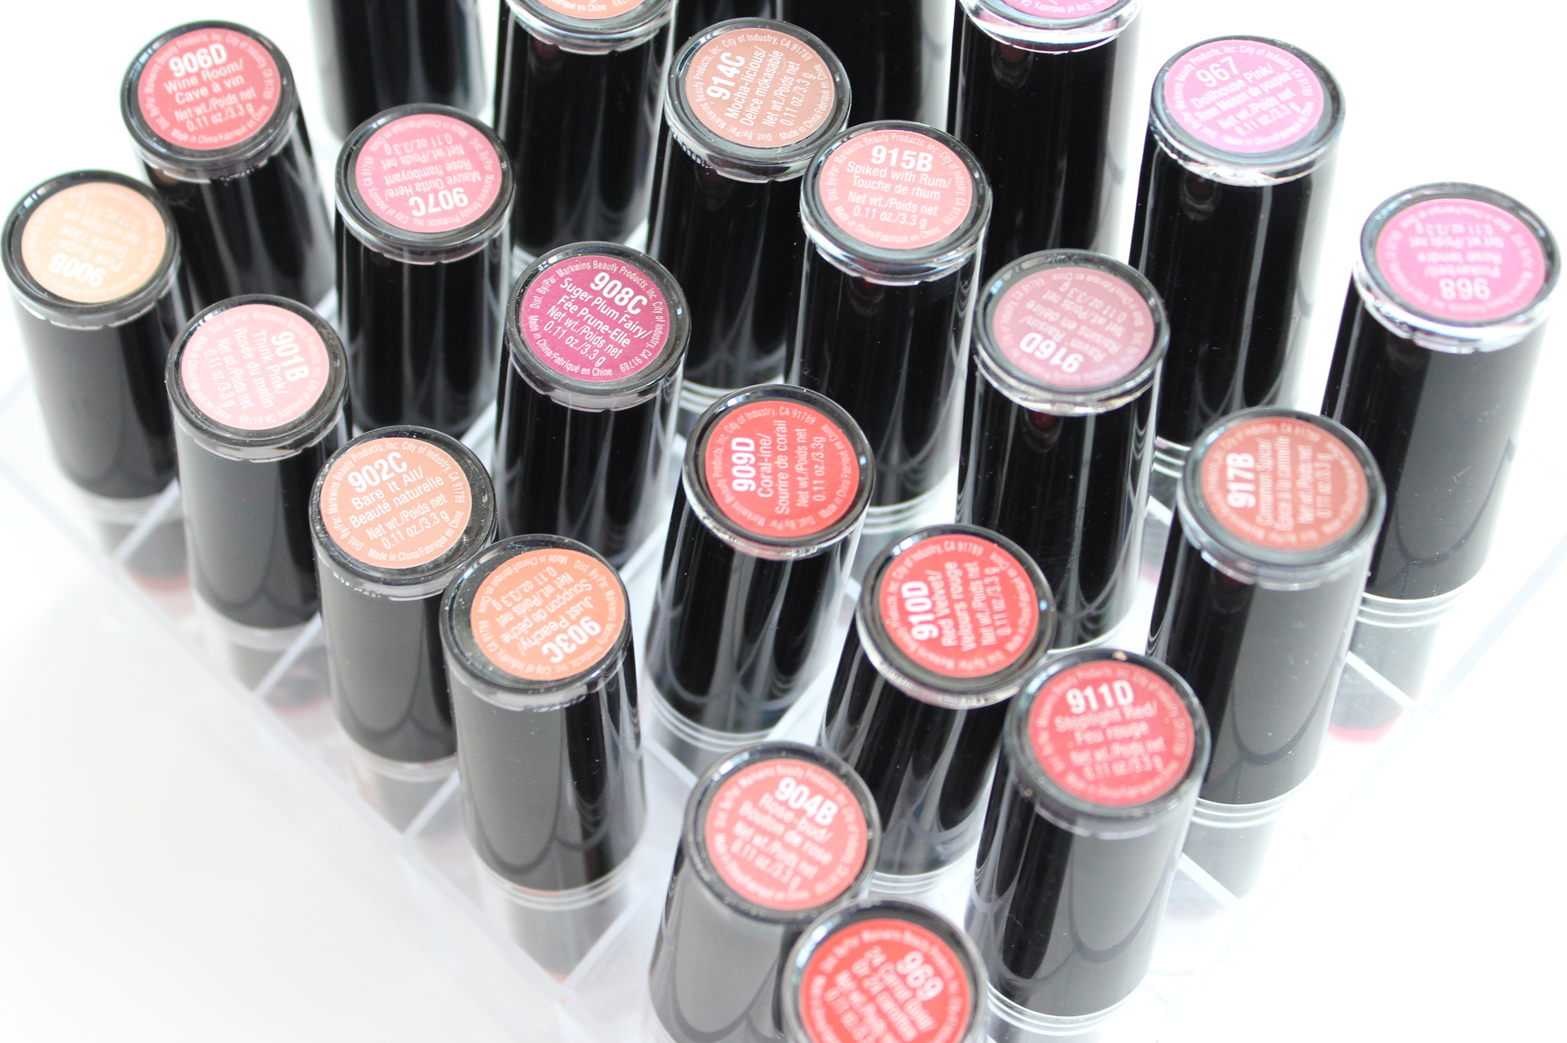 WET N WILD | MegaLast Lipsticks - Complete 26 Shade Collection + ...